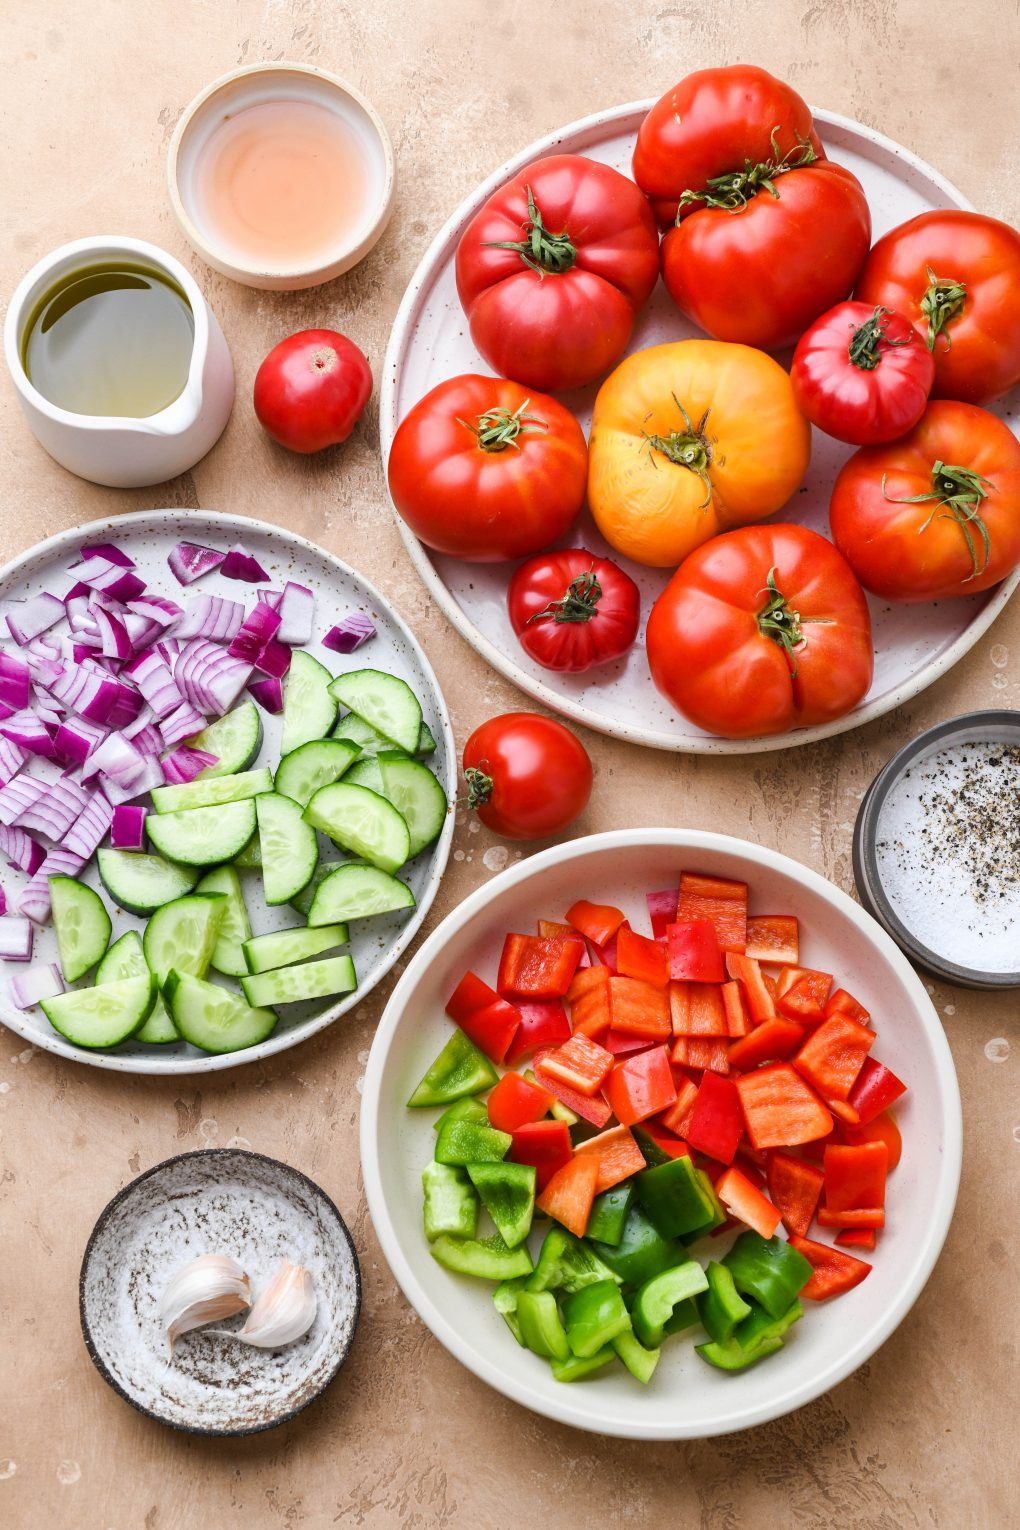 Overhead view of all the ingredients for healthy gazpacho. A large plate of heirloom tomatoes, chopped bell peppers, diced red onion, sliced cucumber, garlic, olive oil, sherry vinegar, salt and pepper. On a light brown background.